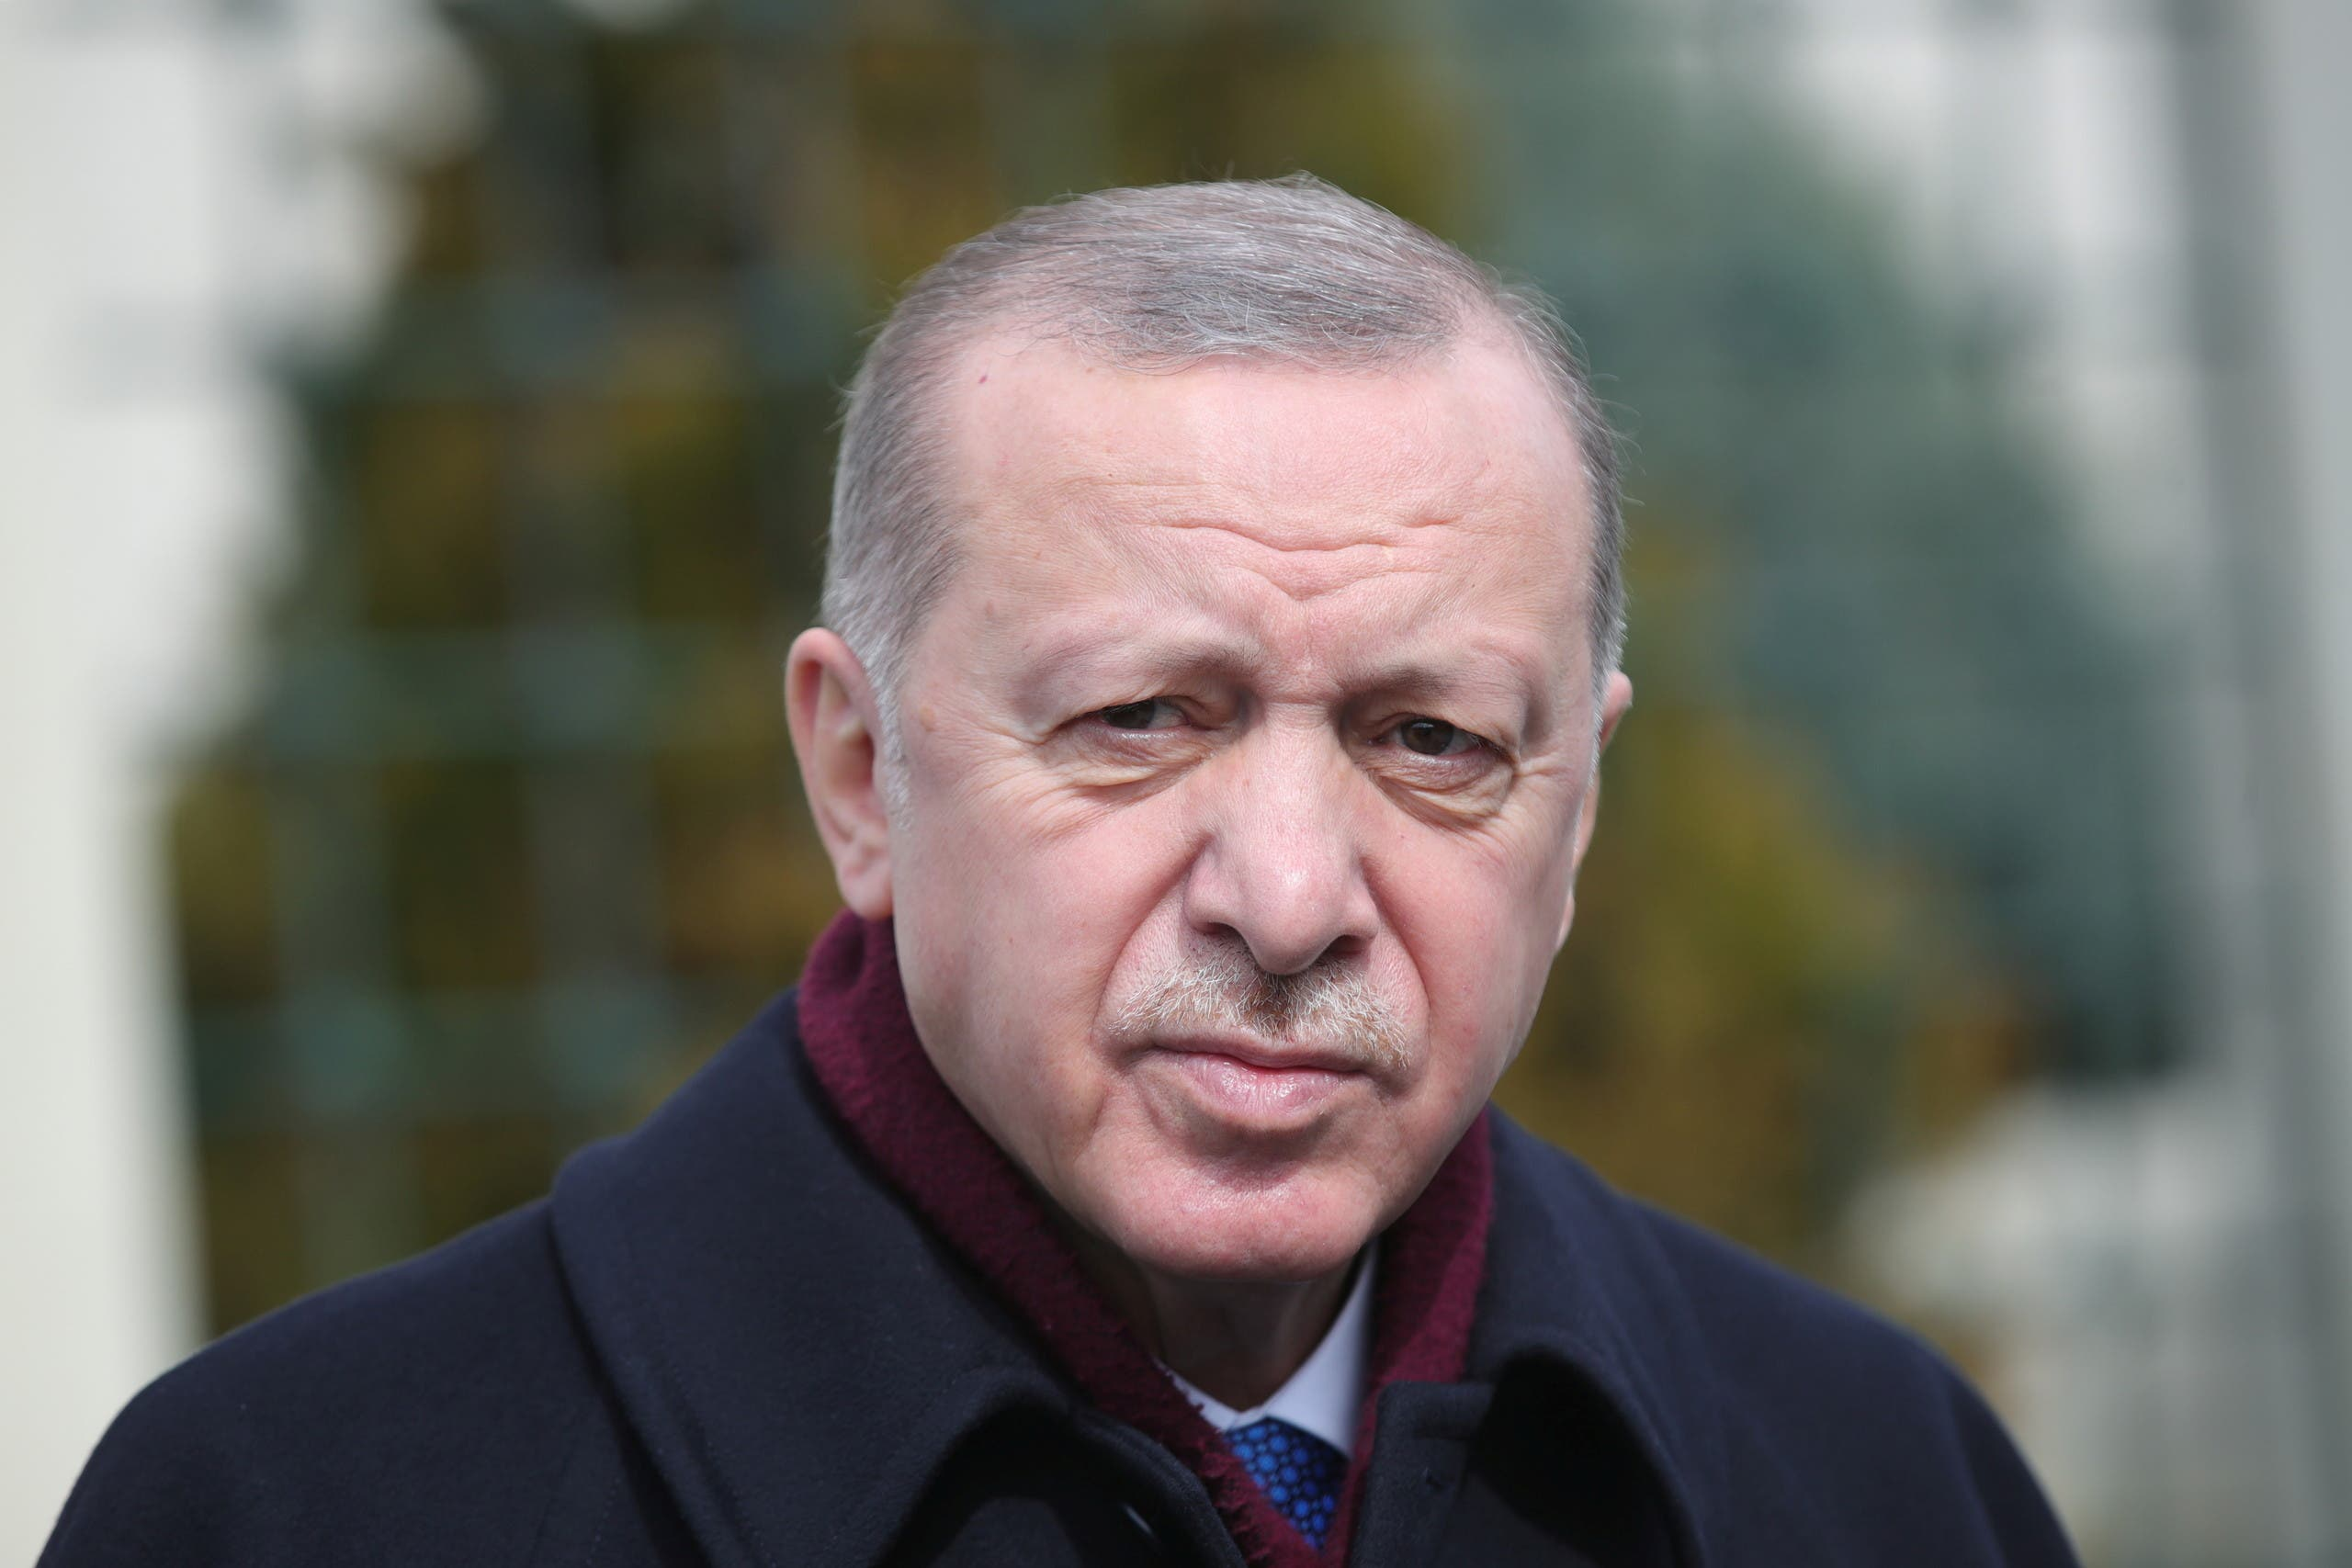 Turkish President Recep Tayyip Erdogan looks on as he addresses the media after the Friday prayers in Istanbul, Turkey March 12, 2021. (Reuters)